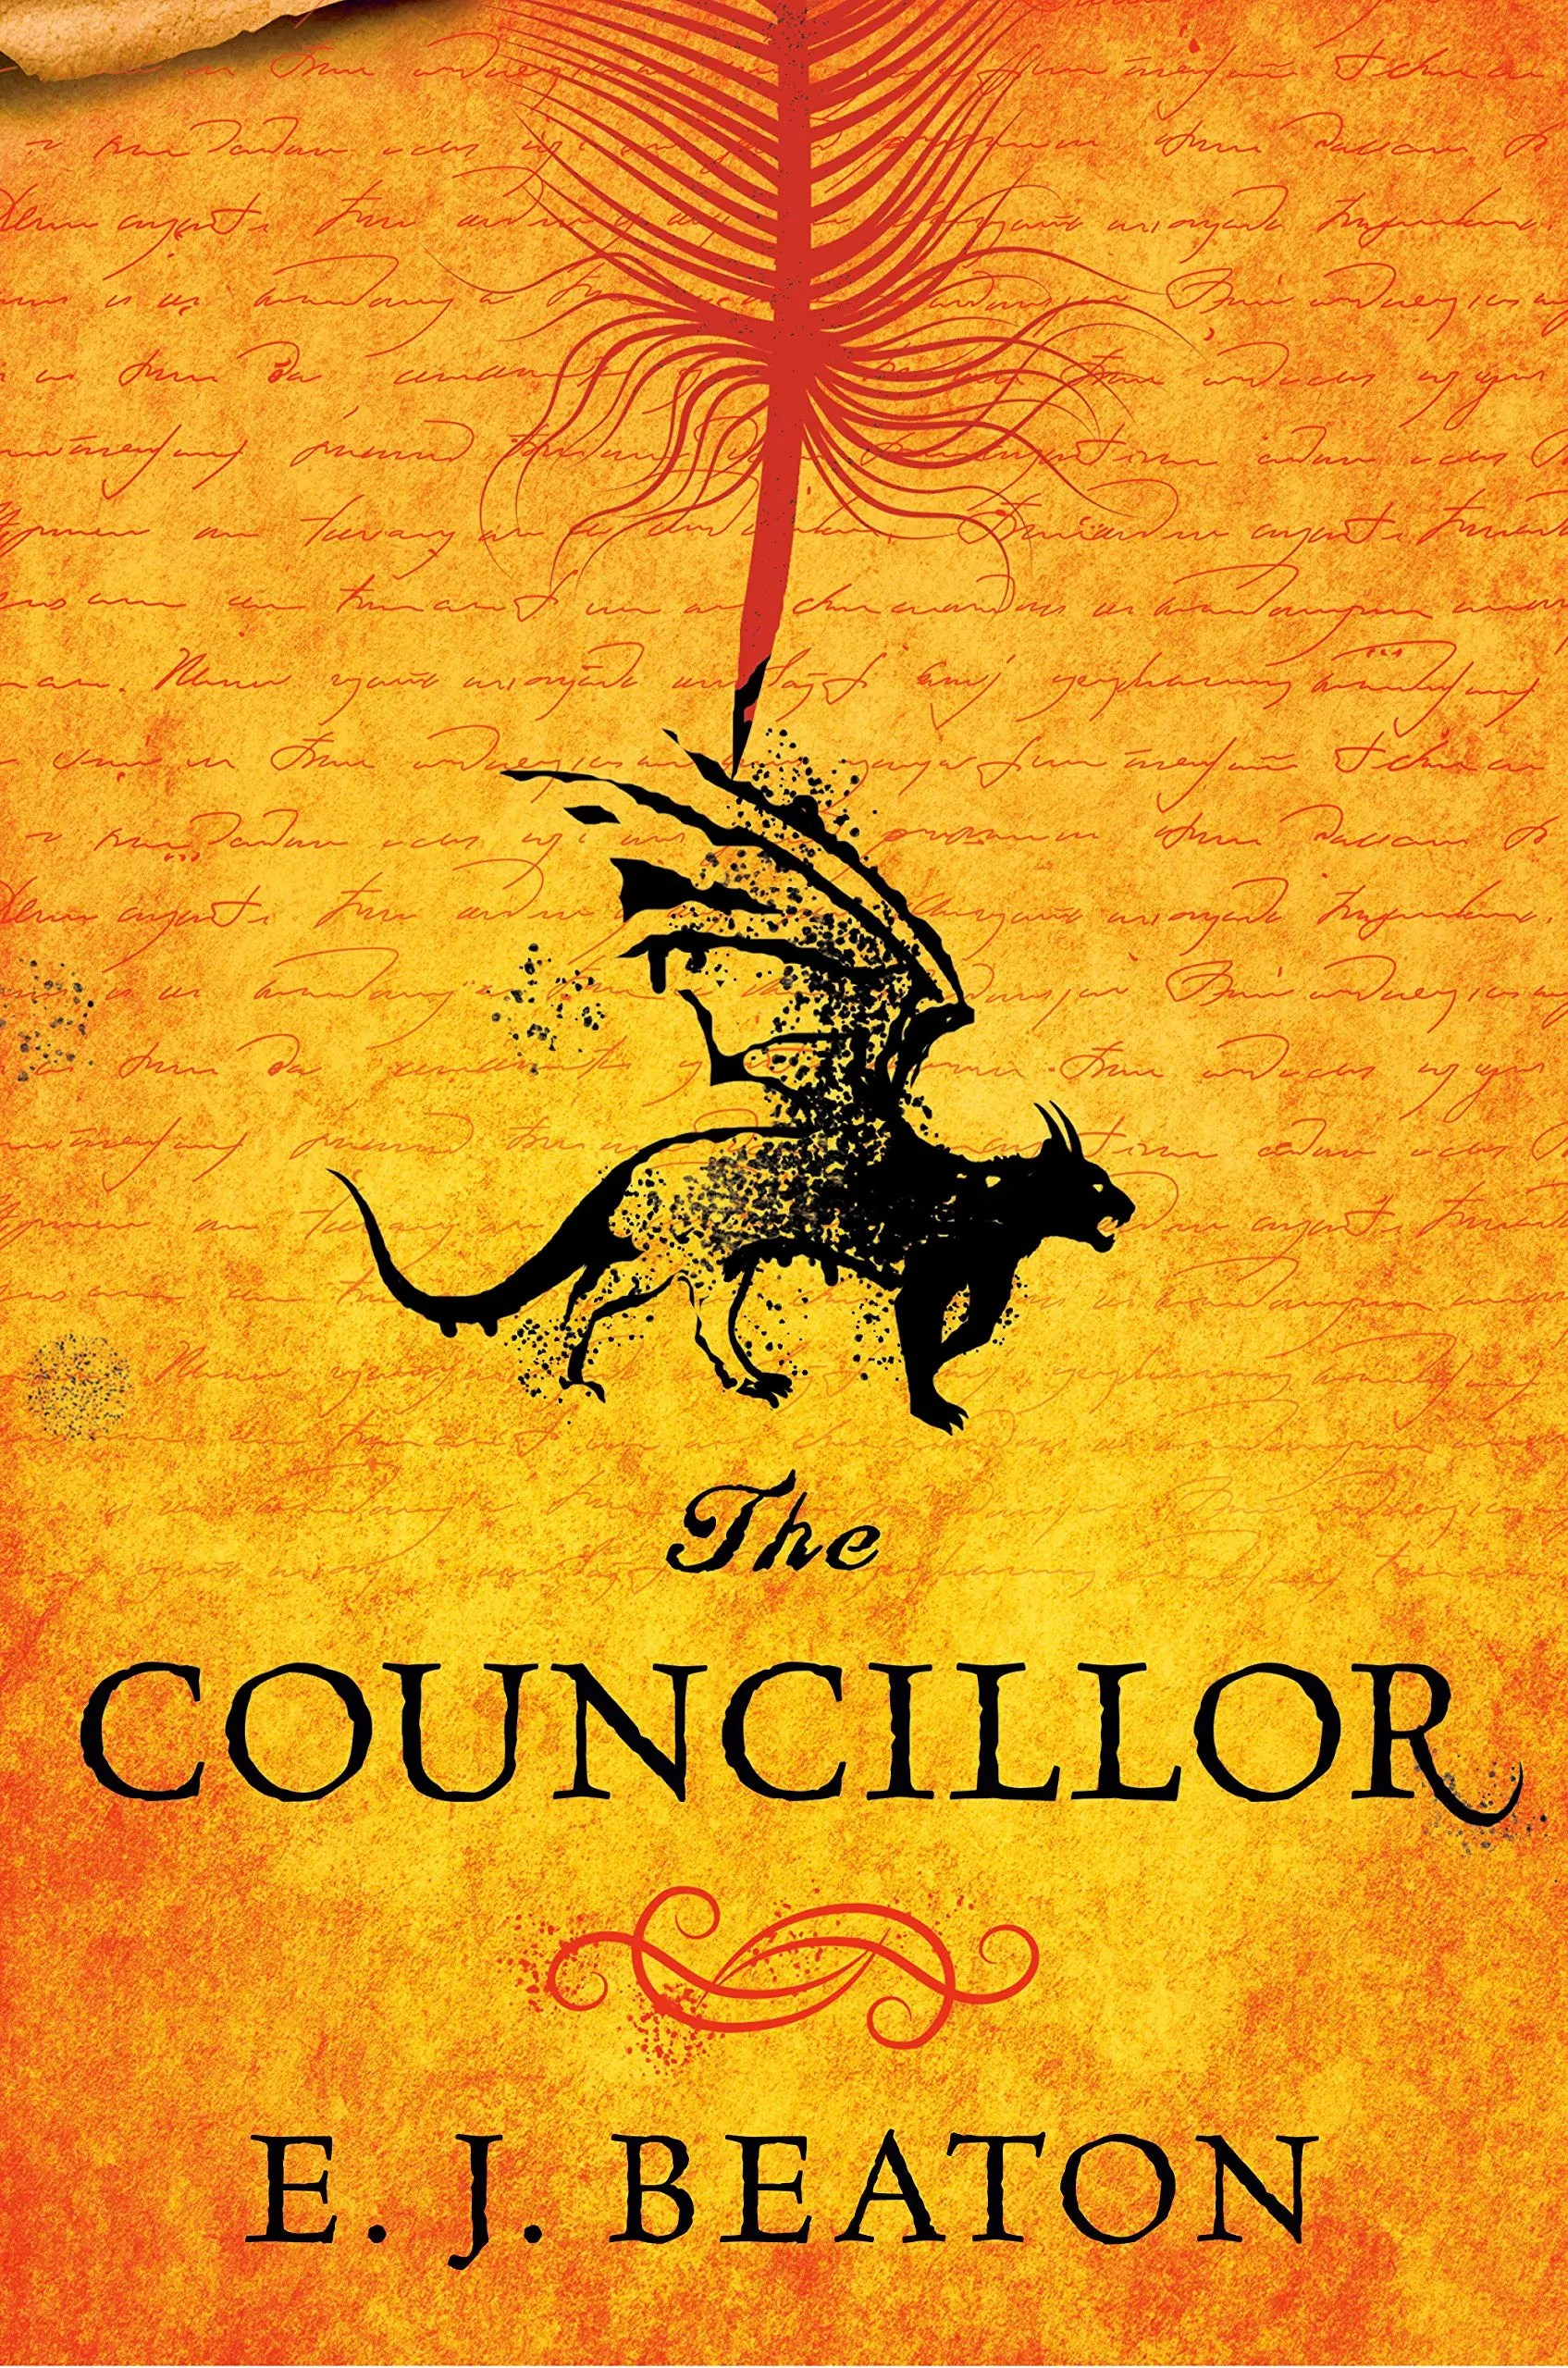 Book Review: The Councillor by E. J. Beaton - Novel Notions